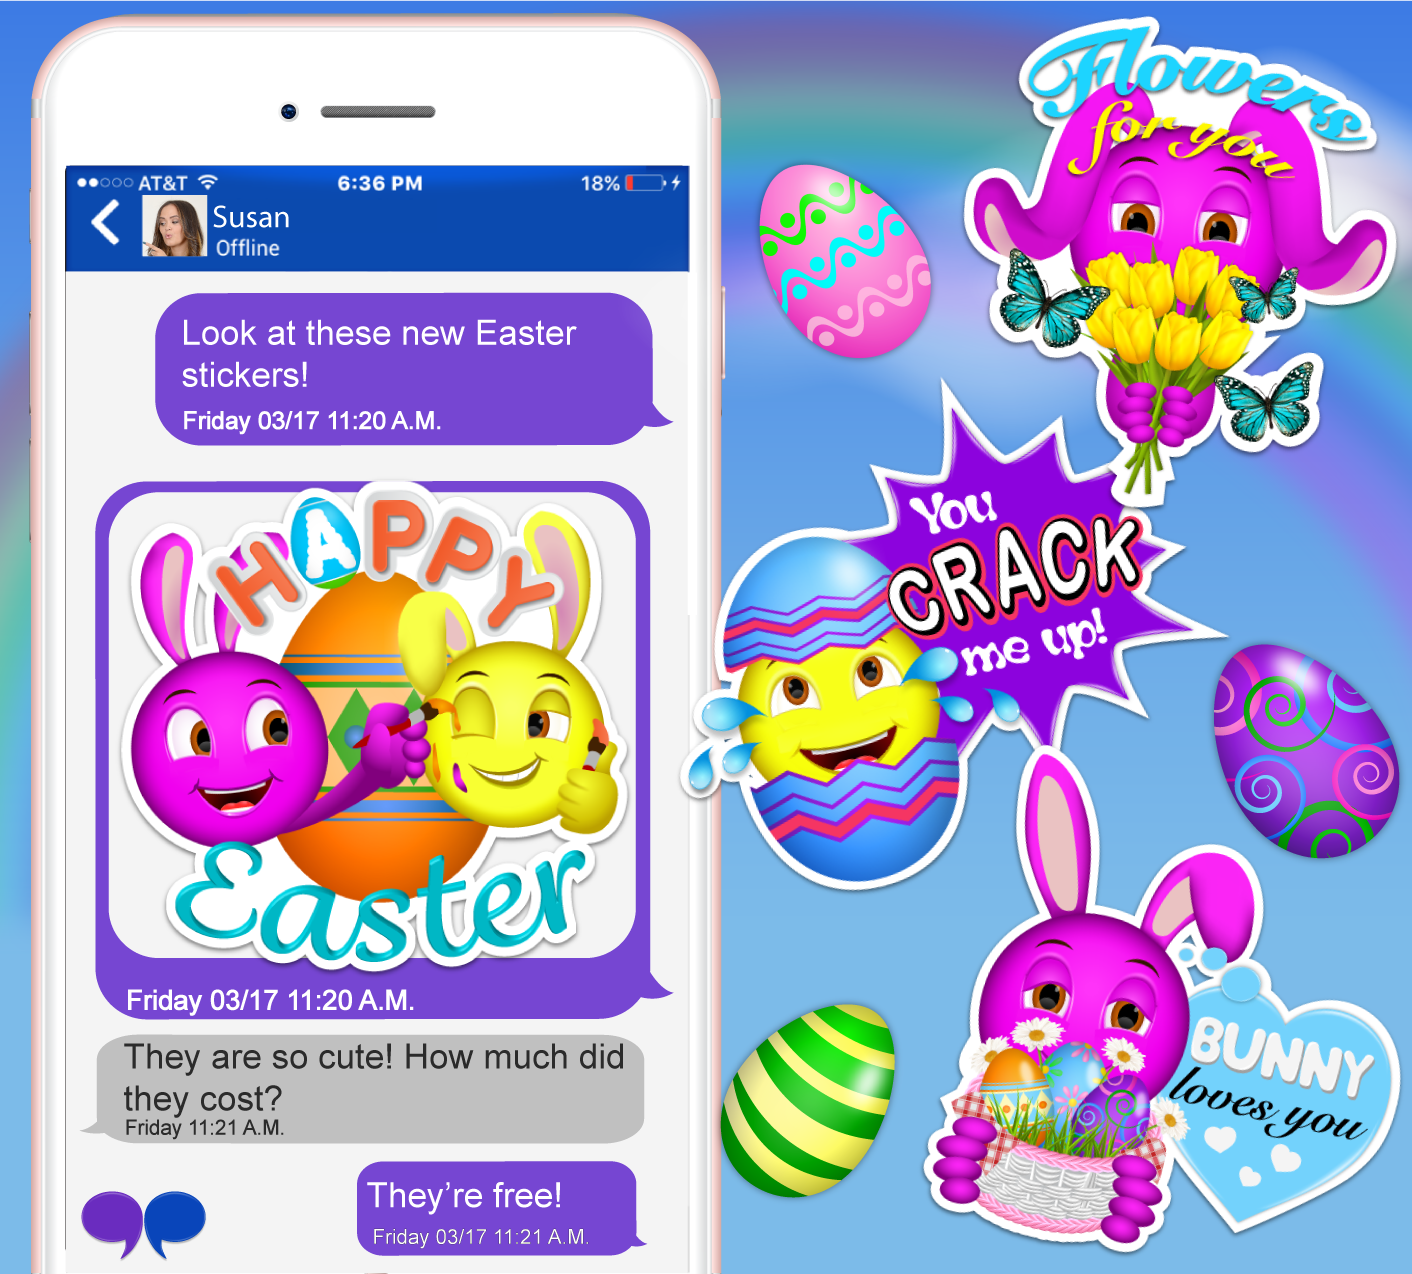 Download the Bubblelingo App and get your Easter stickers now! At Google Play & iTunes!  #Easter #easterstickers #holiday #contentcreator #apps #messaging #Android #iPhone #GooglePlay #iTunes